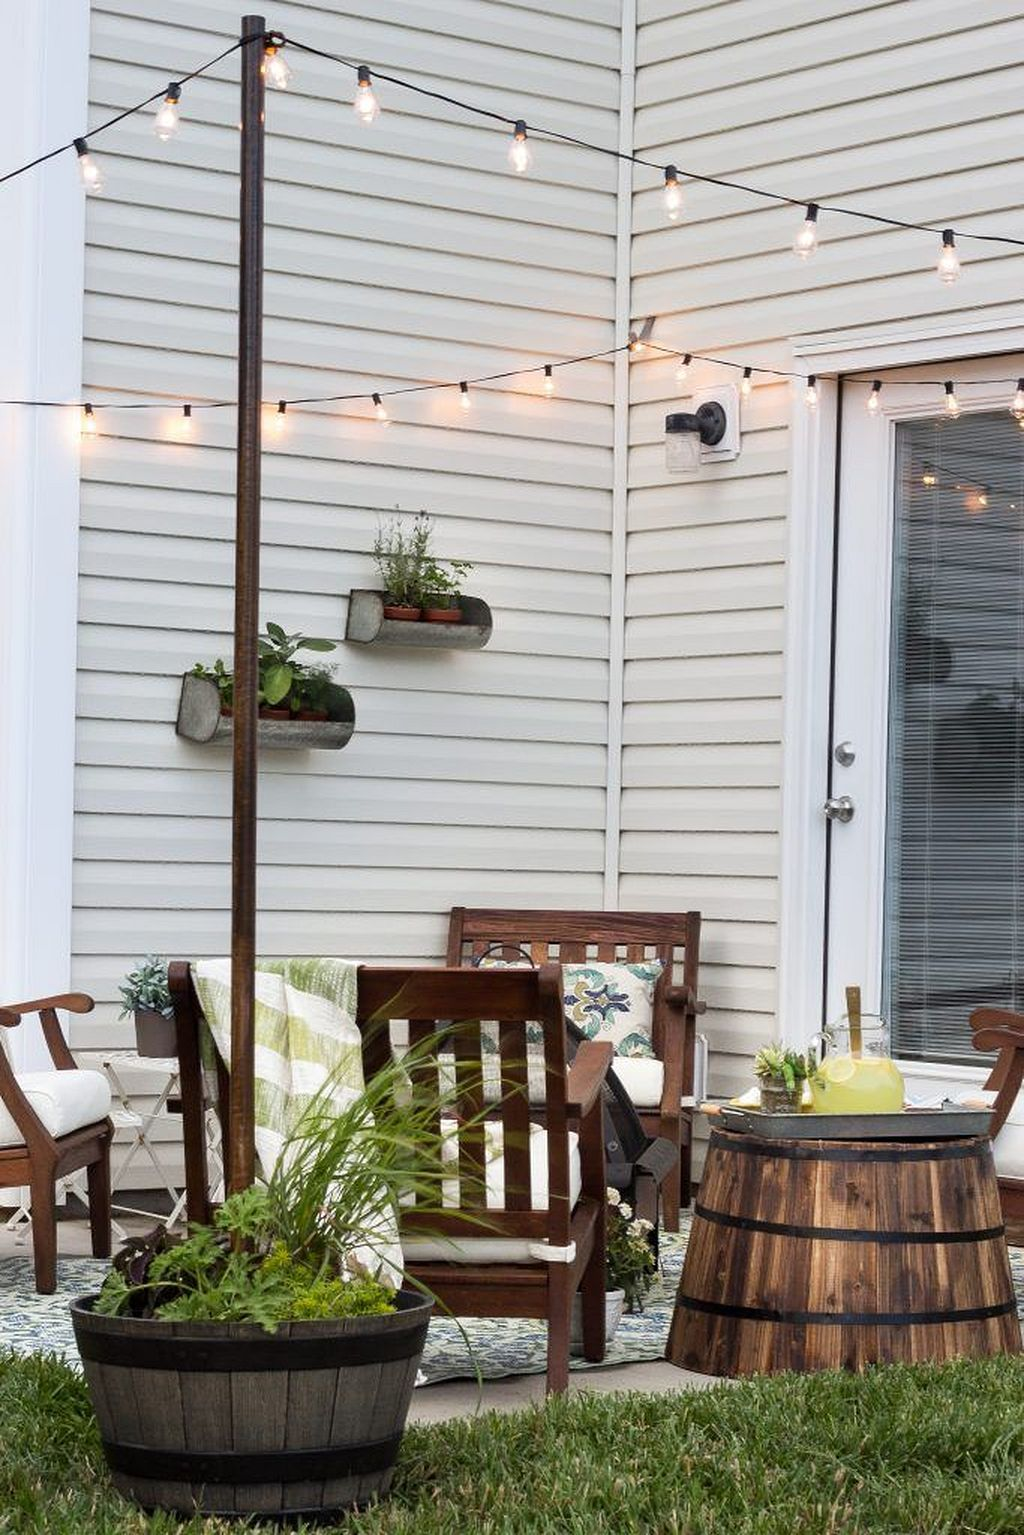 With Spring Coming In Fast Motion, Here Are Some Outdoor Ideas For You 6 Outdoor Ideas With Spring Coming In Fast Motion, Here Are Some Outdoor Ideas For You With Spring Coming In Fast Motion Here Are Some Outdoor Ideas For You 6